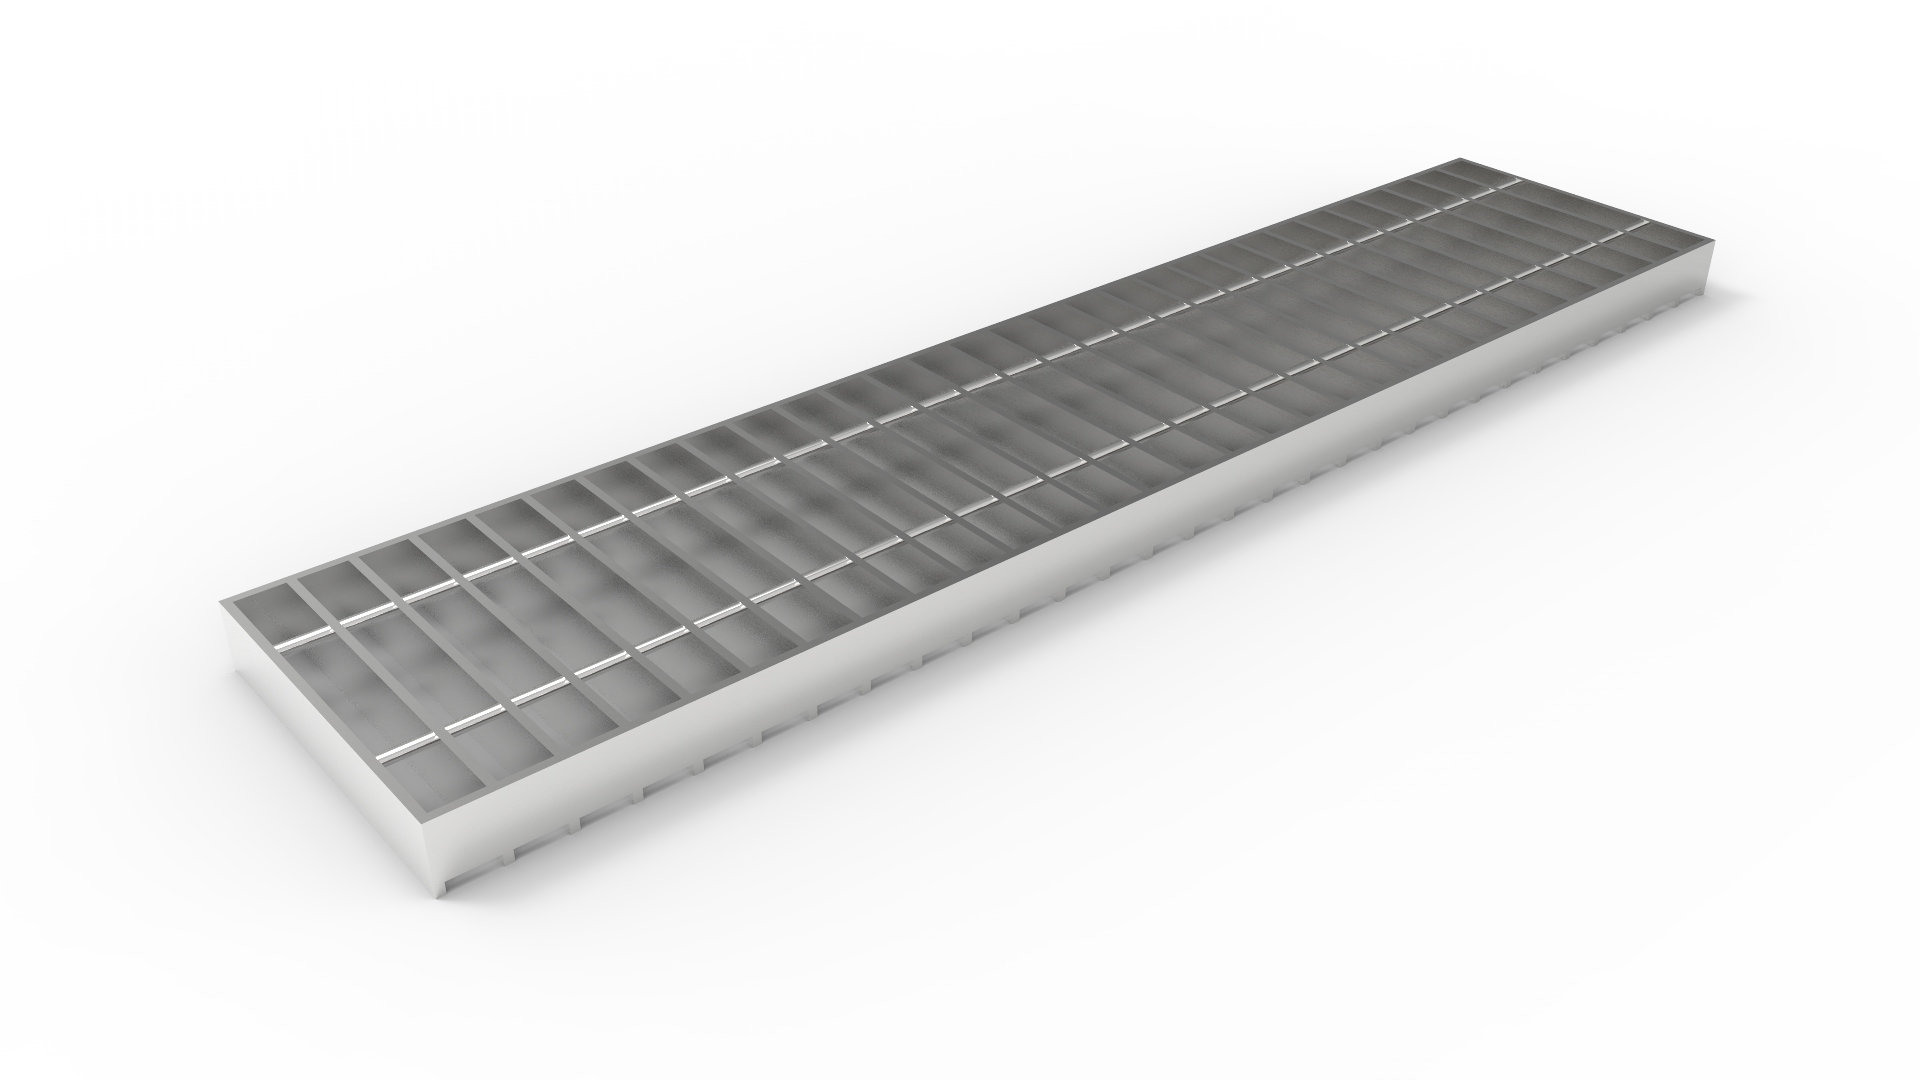 8 Quot Wide Stainless Steel Trench Drain Bar Grate Dura Trench